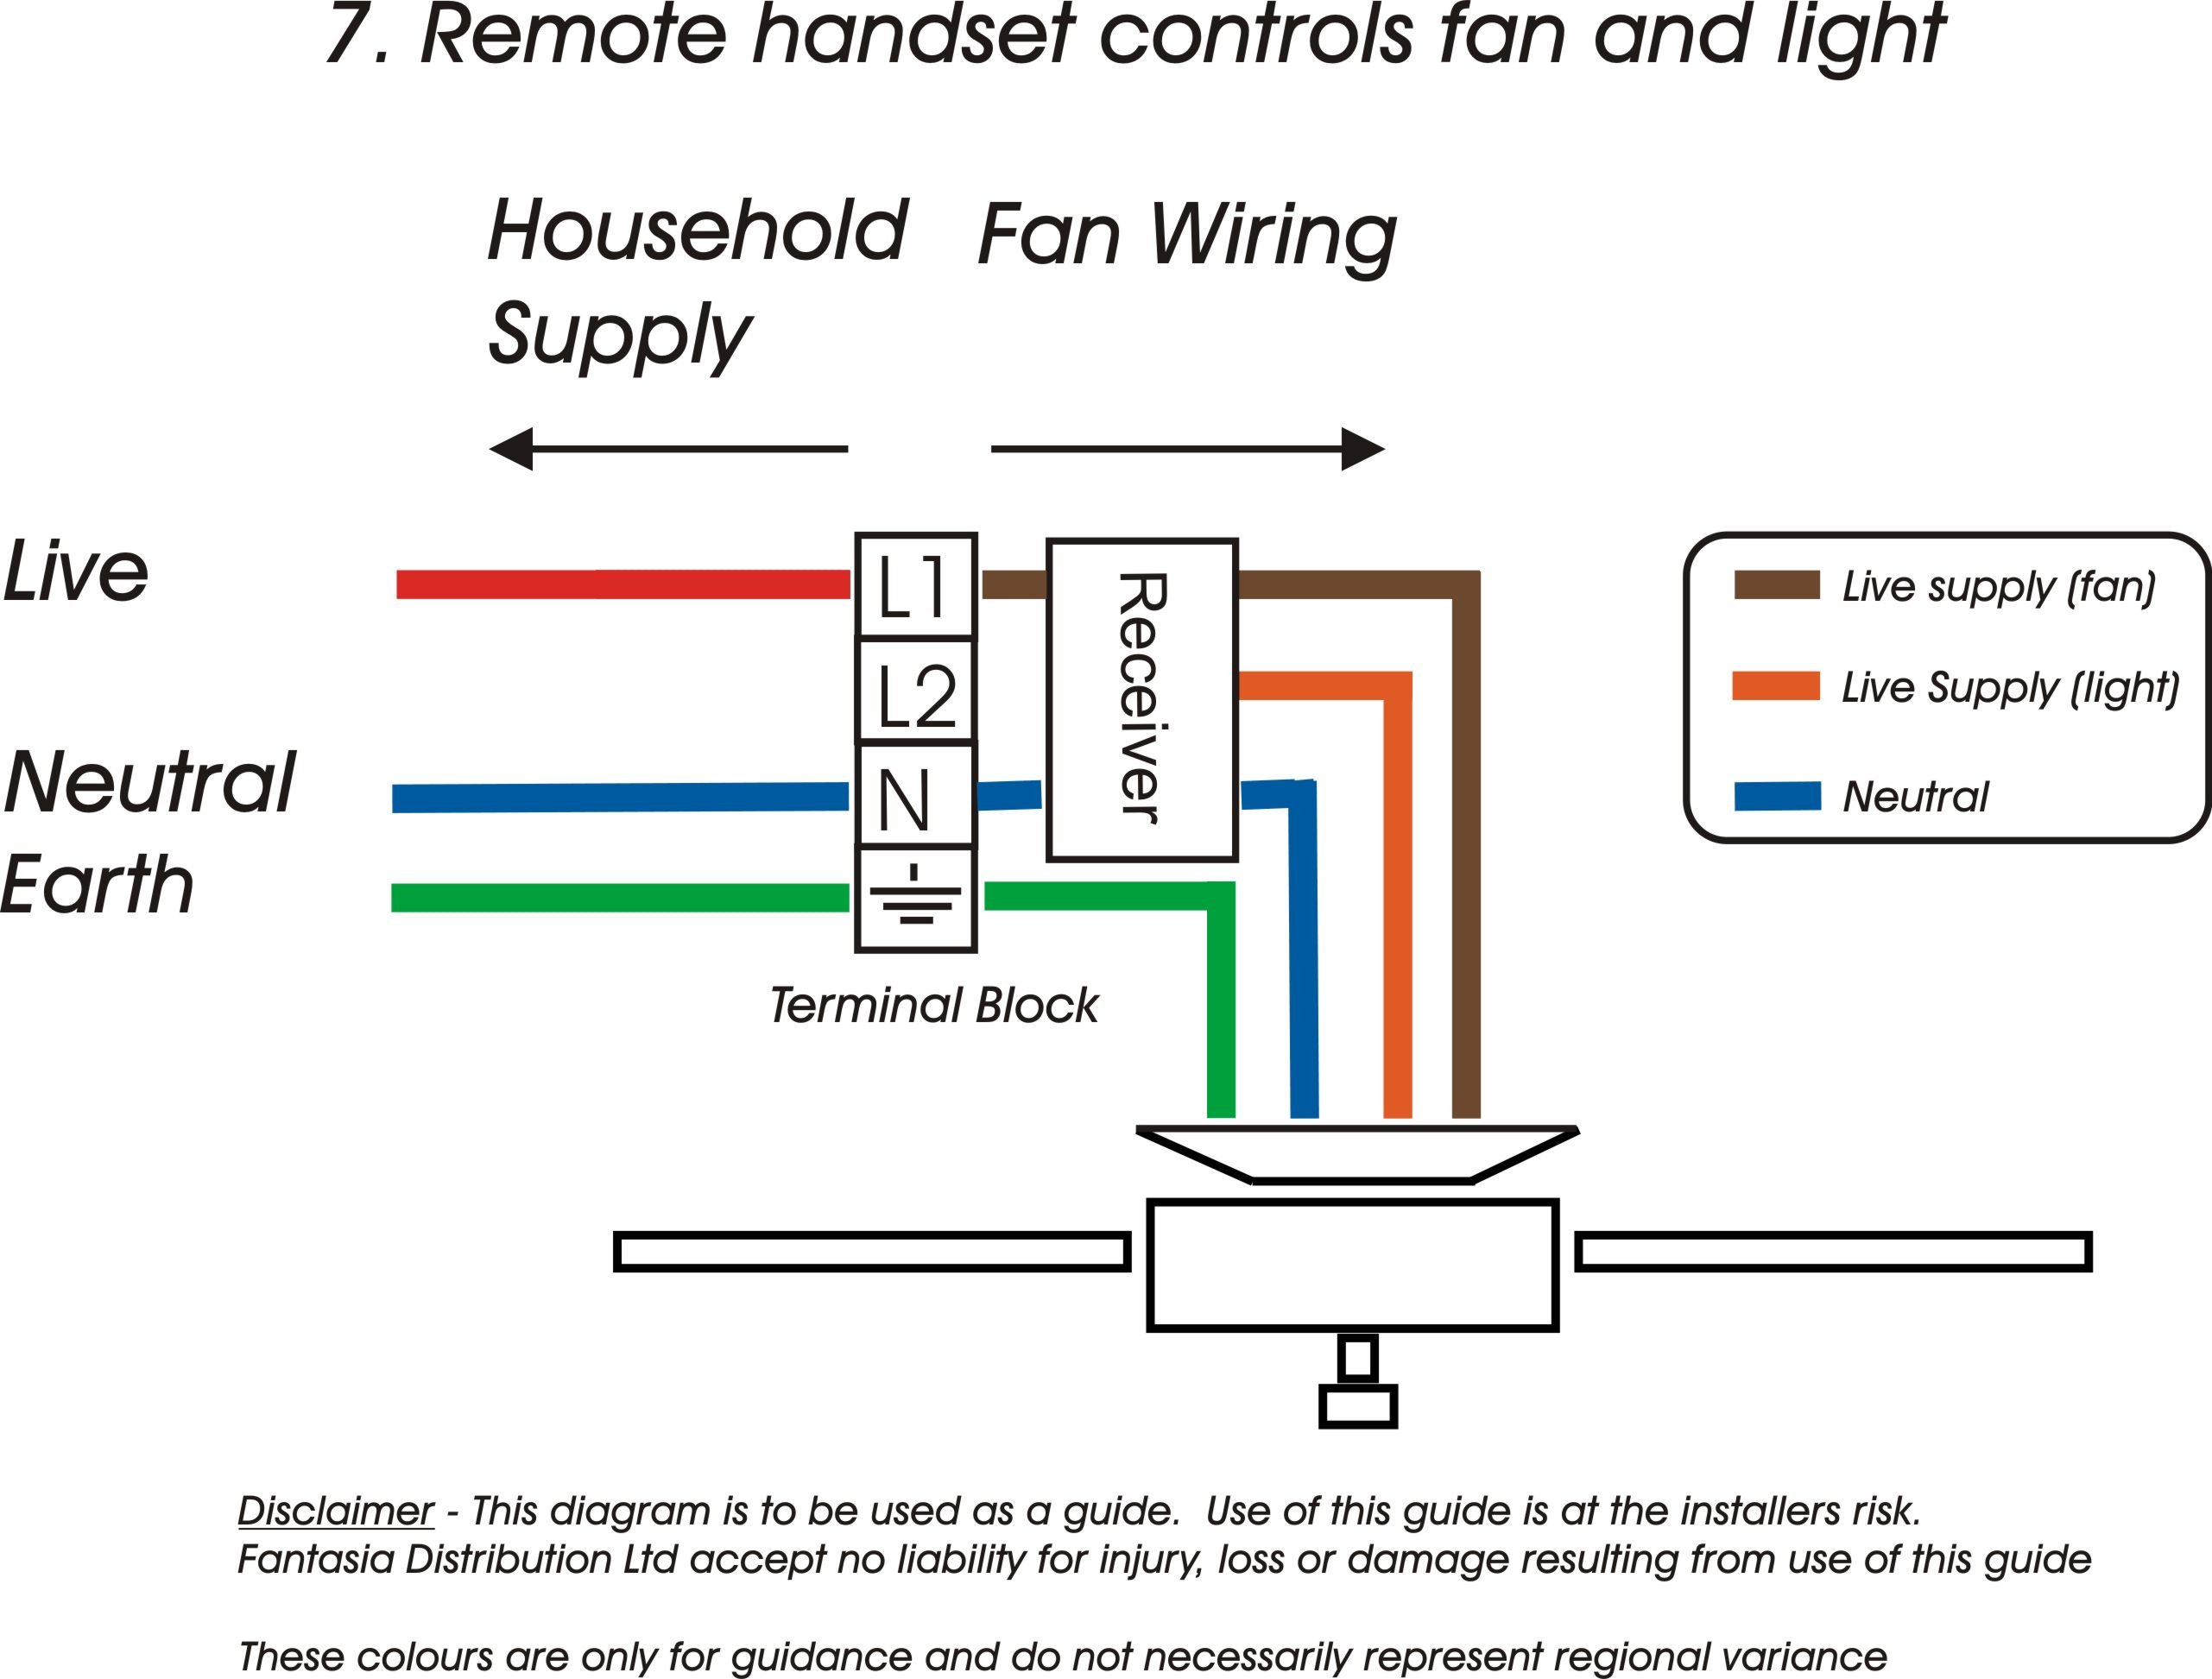 Wiring Diagram For Ceiling Fan With Light Uk | Wiring Diagram - Wiring Diagram For Ceiling Fan With Light